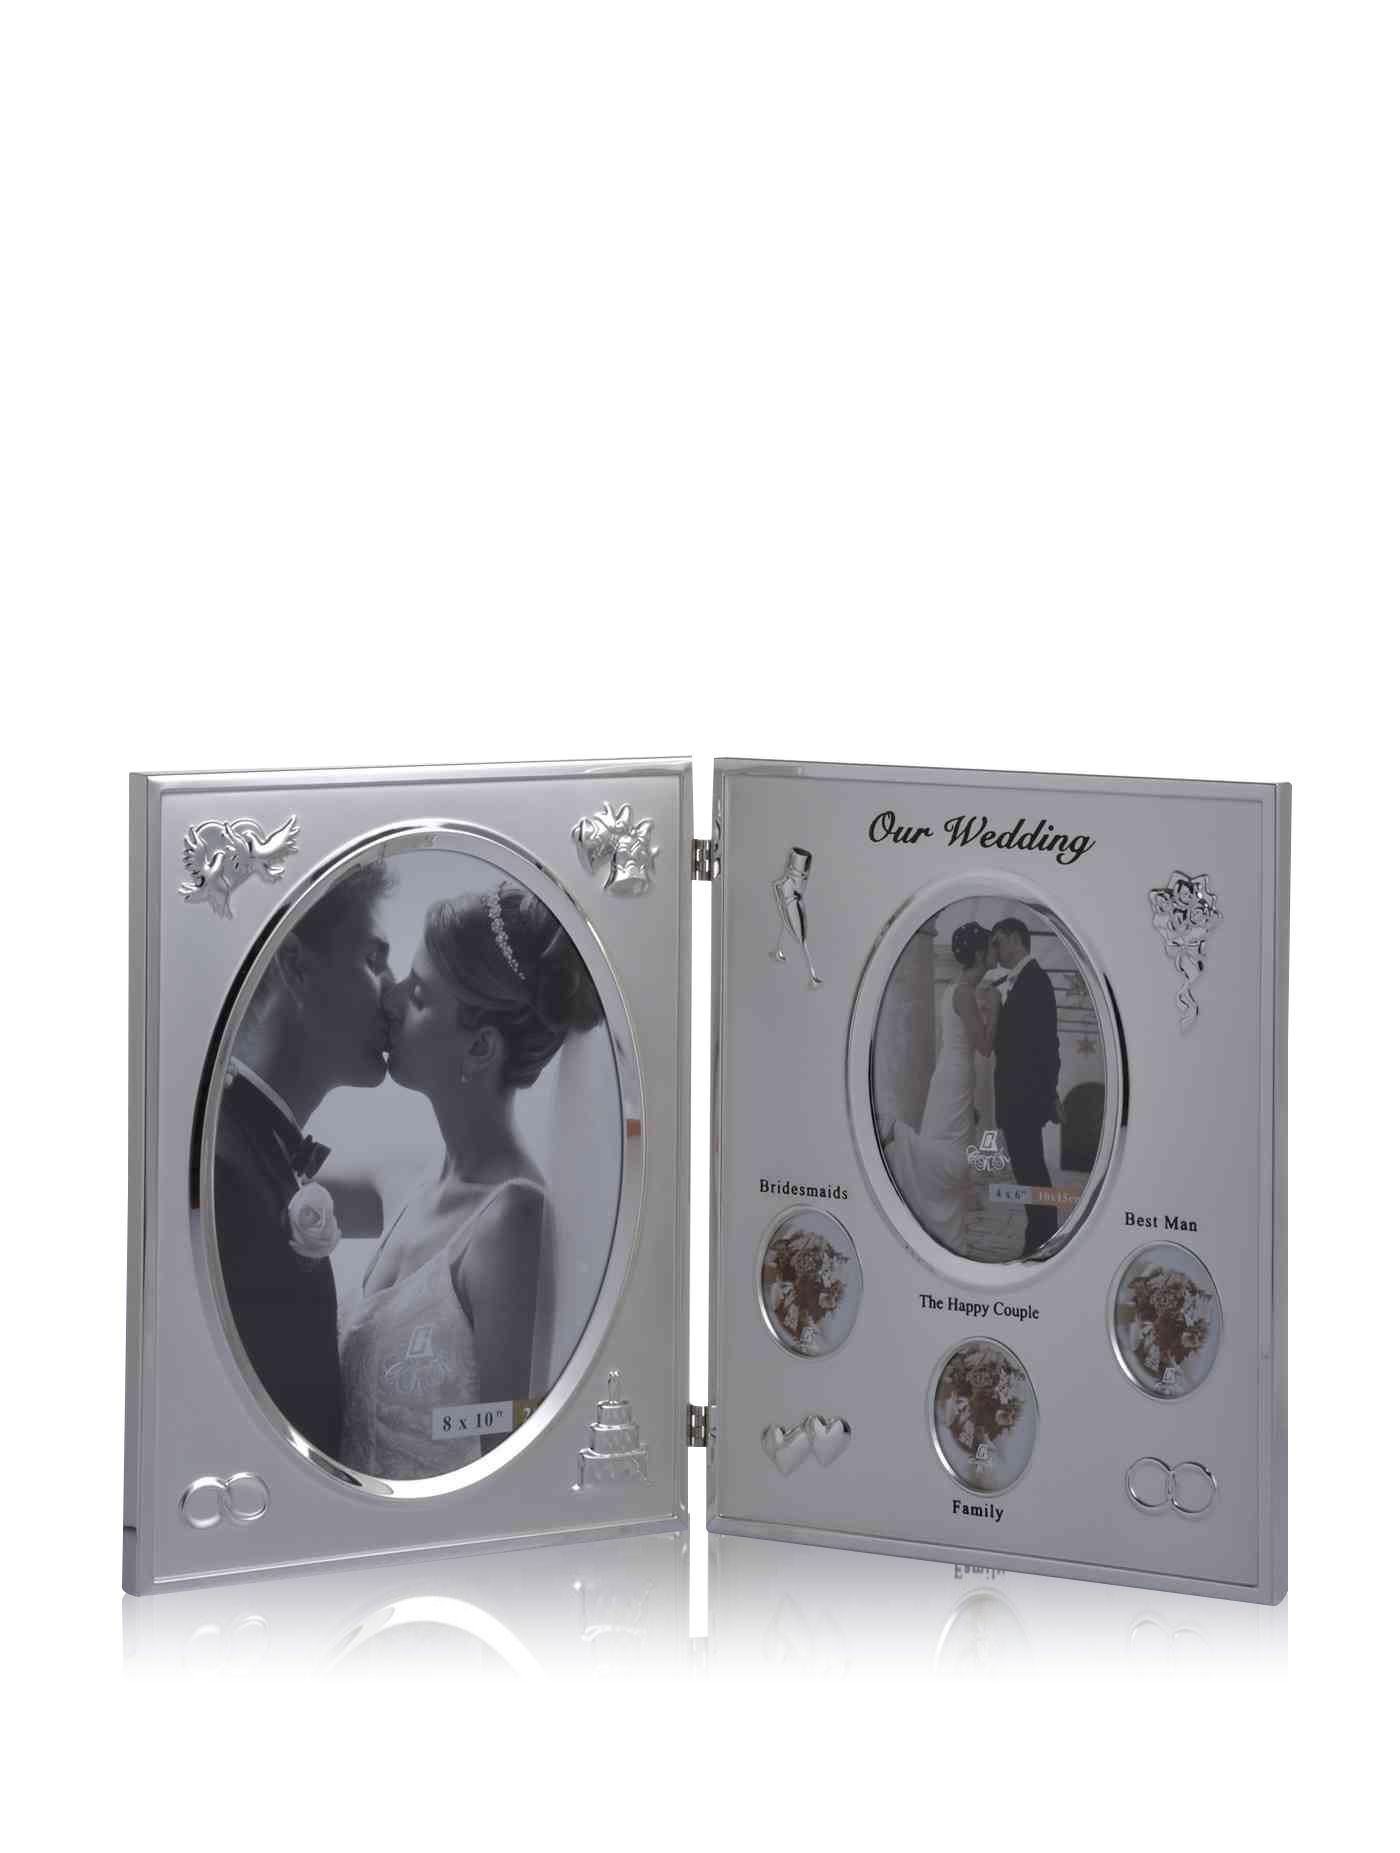 Ckk Our Wedding Double Picture Frames B204x5qcrc Robinson Online Shopping